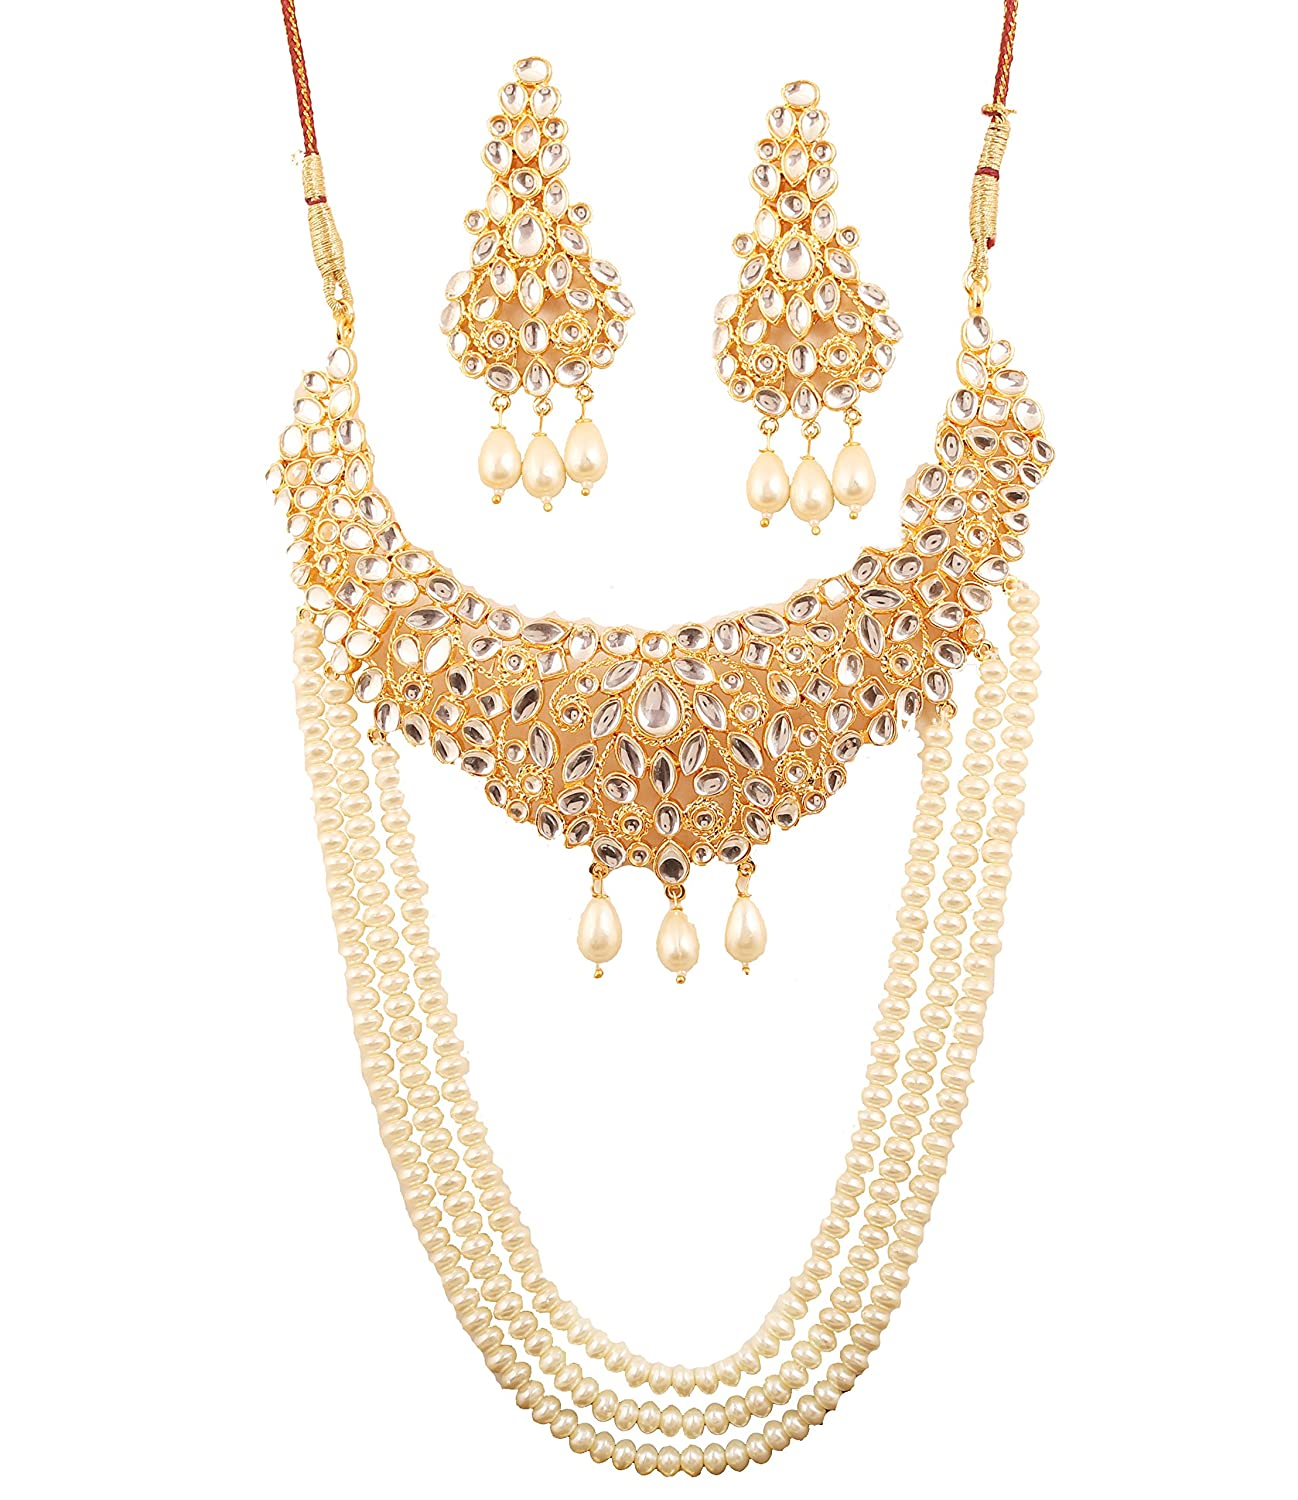 Cheap Price Traditional Indian Wedding Gold Tone Kundan Necklace Earrings Set Jewellery Rich And Magnificent Bridal & Wedding Party Jewelry Engagement & Wedding